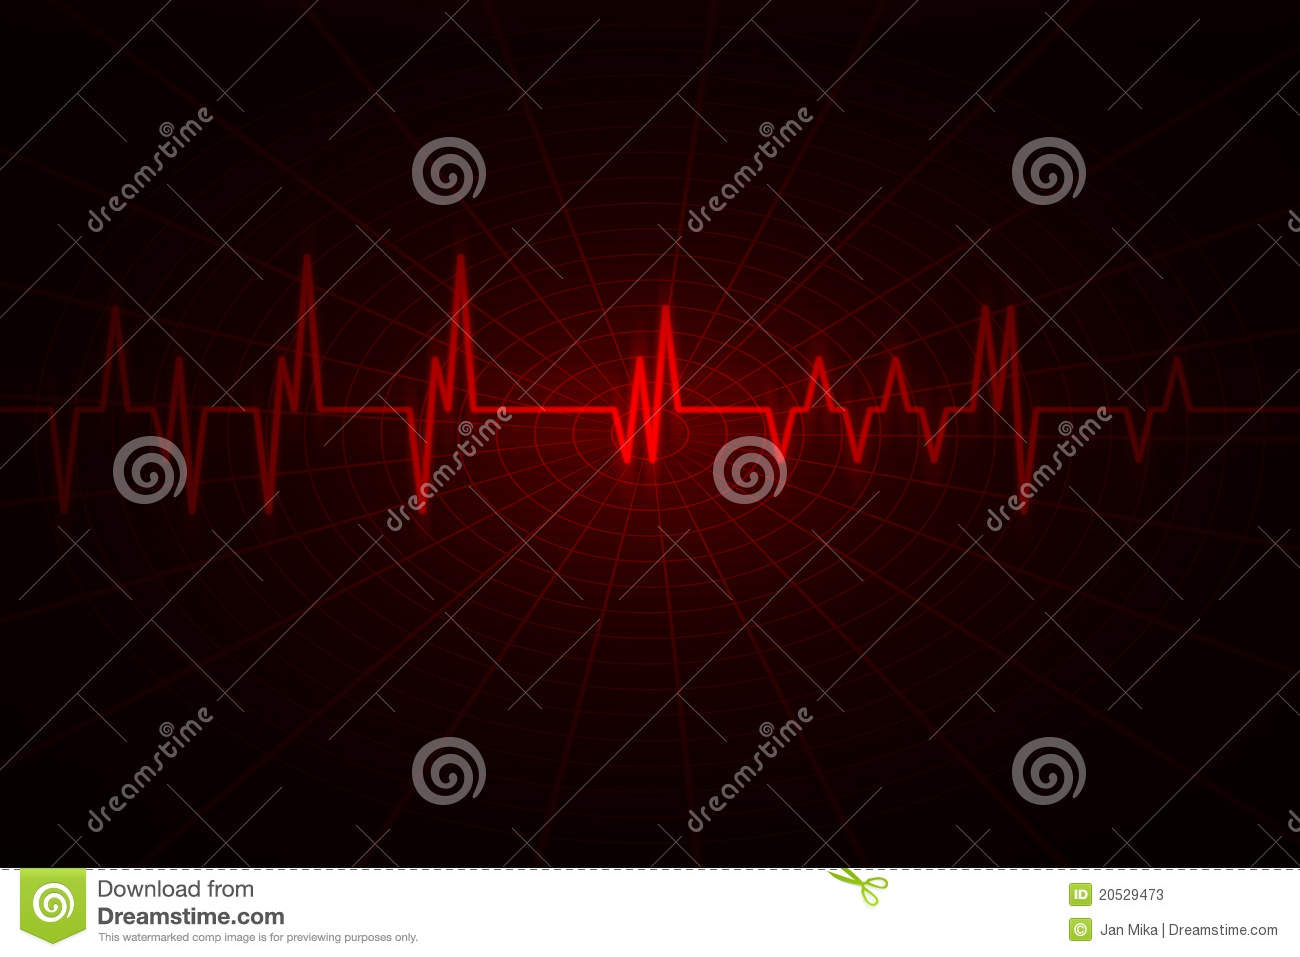 Audio or pulse beat wave